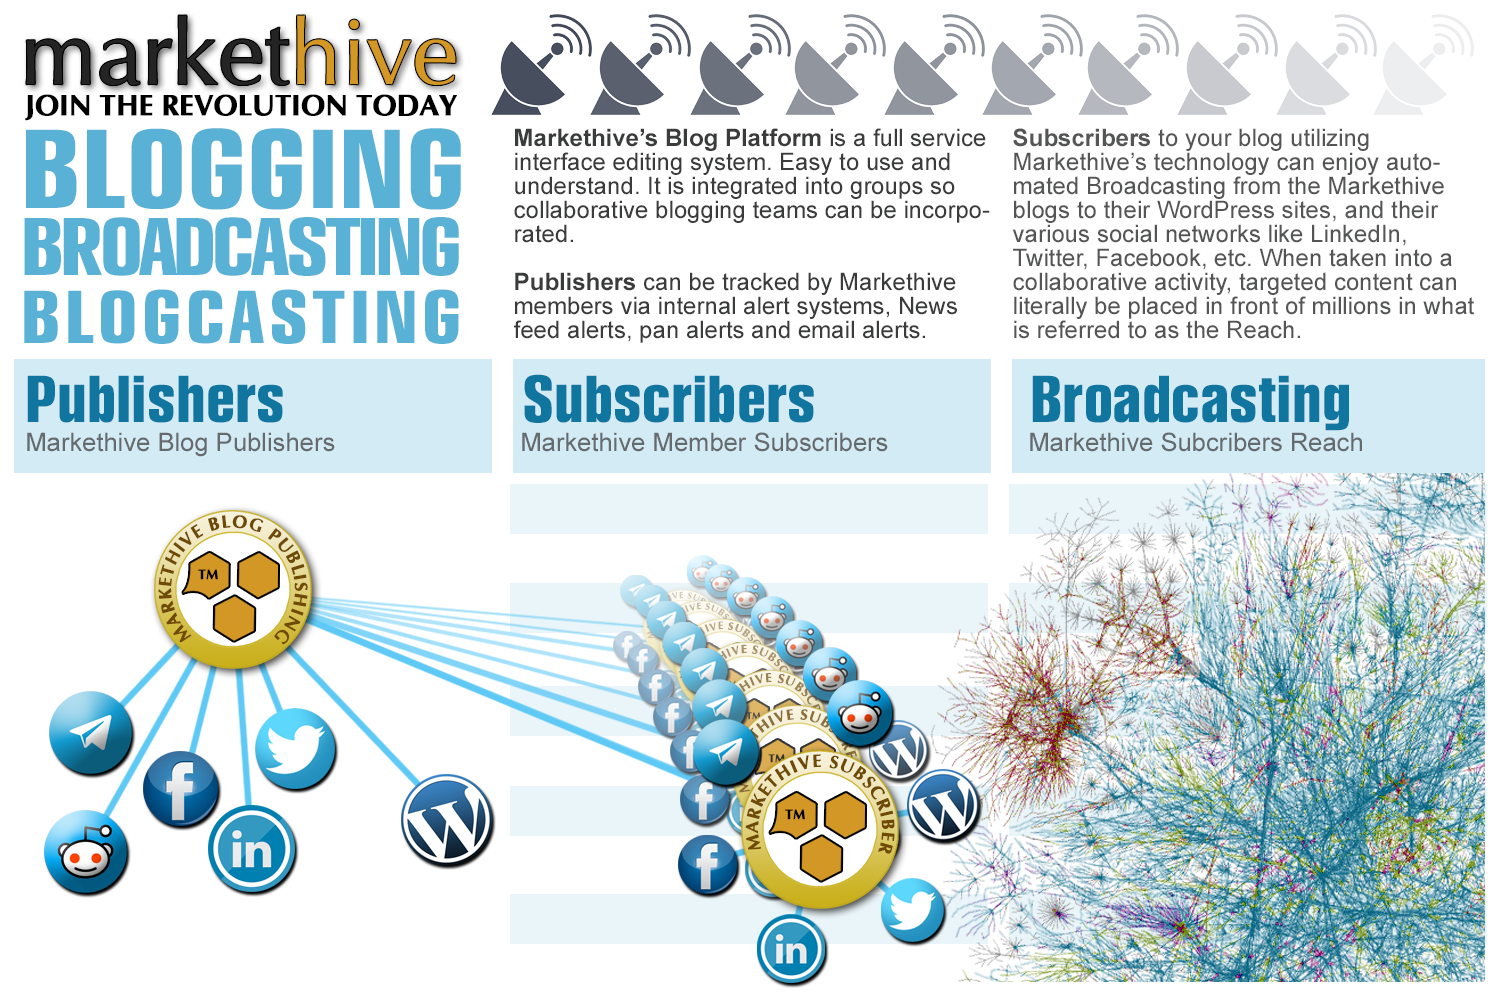 Blogging broadcasting combined